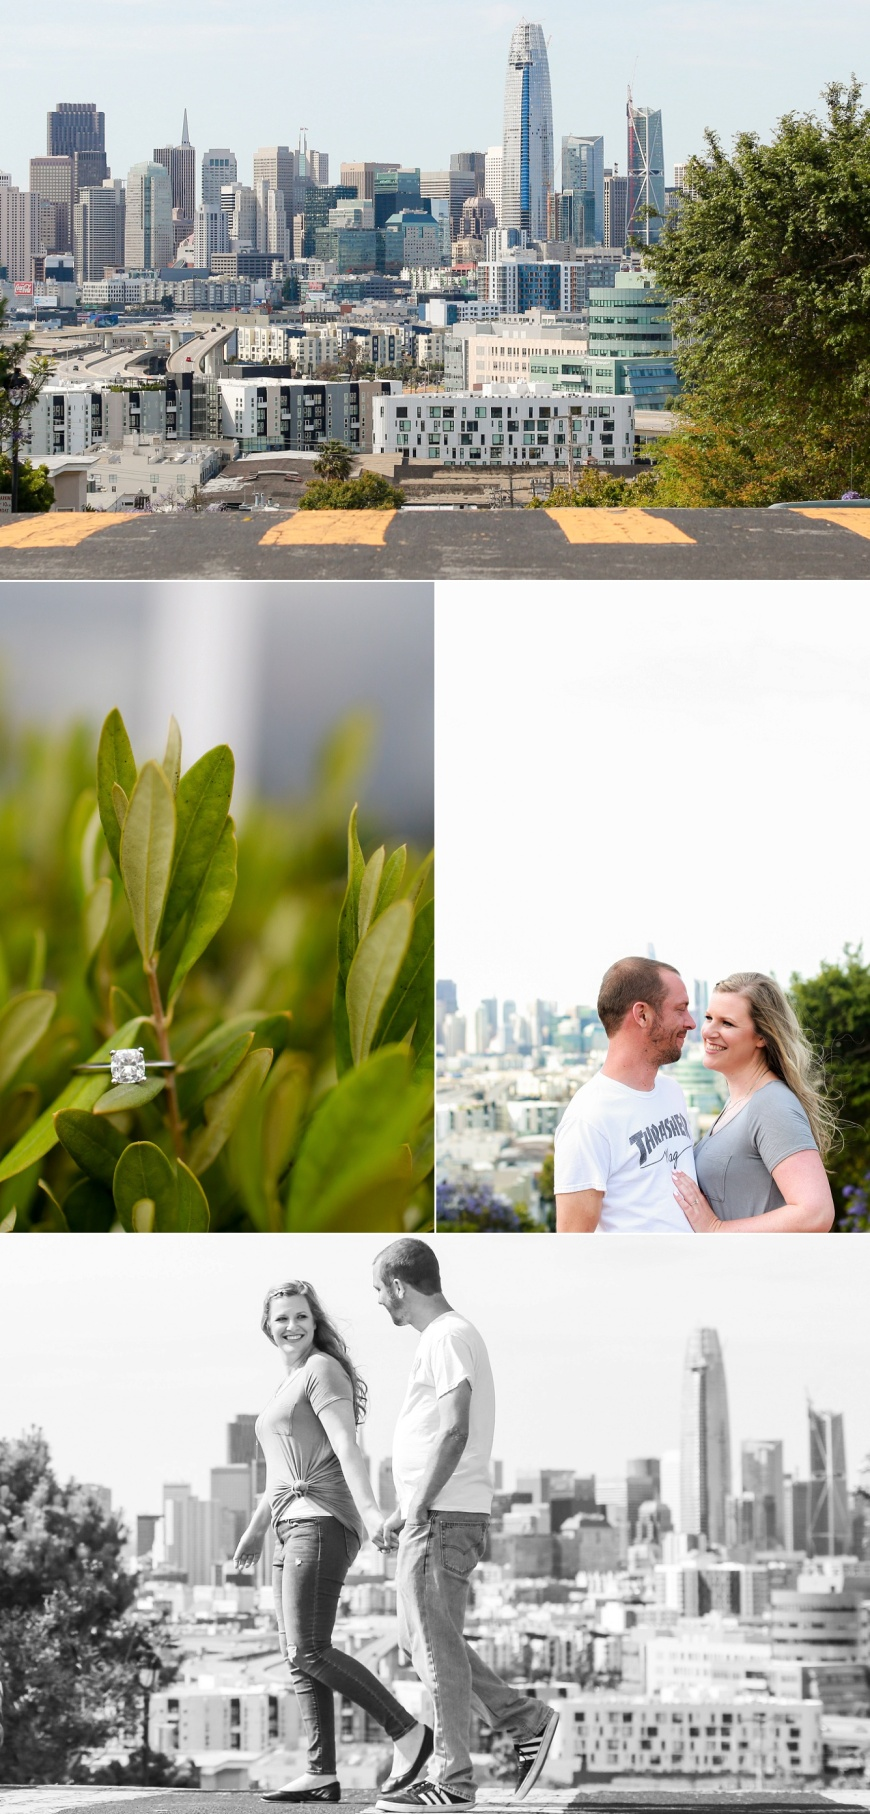 Urban-SF-San-Francisco-Engagement_1001.jpg